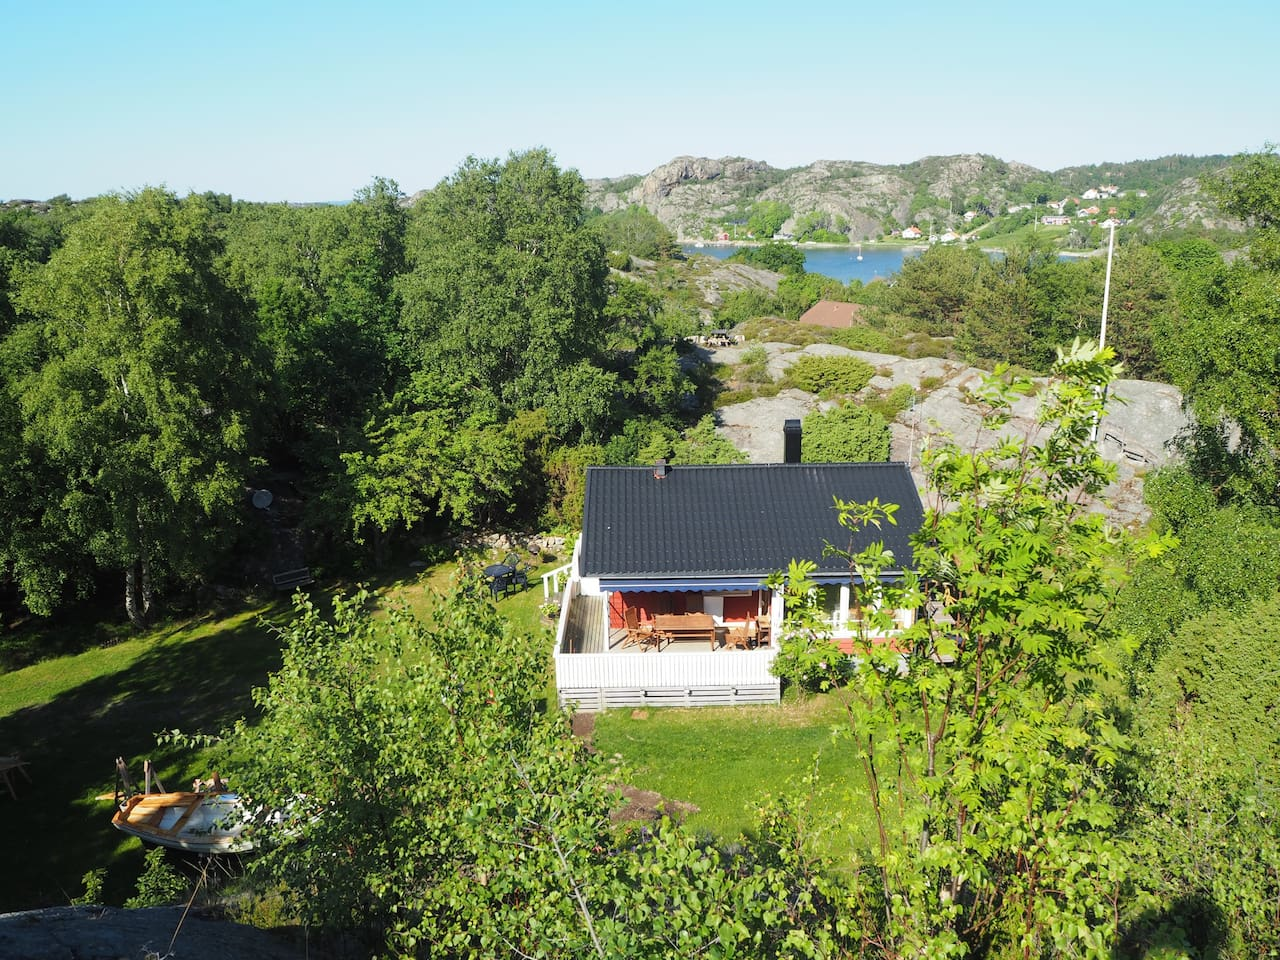 Ells Bed & Breakfast, nra havet. - Bed and breakfasts for